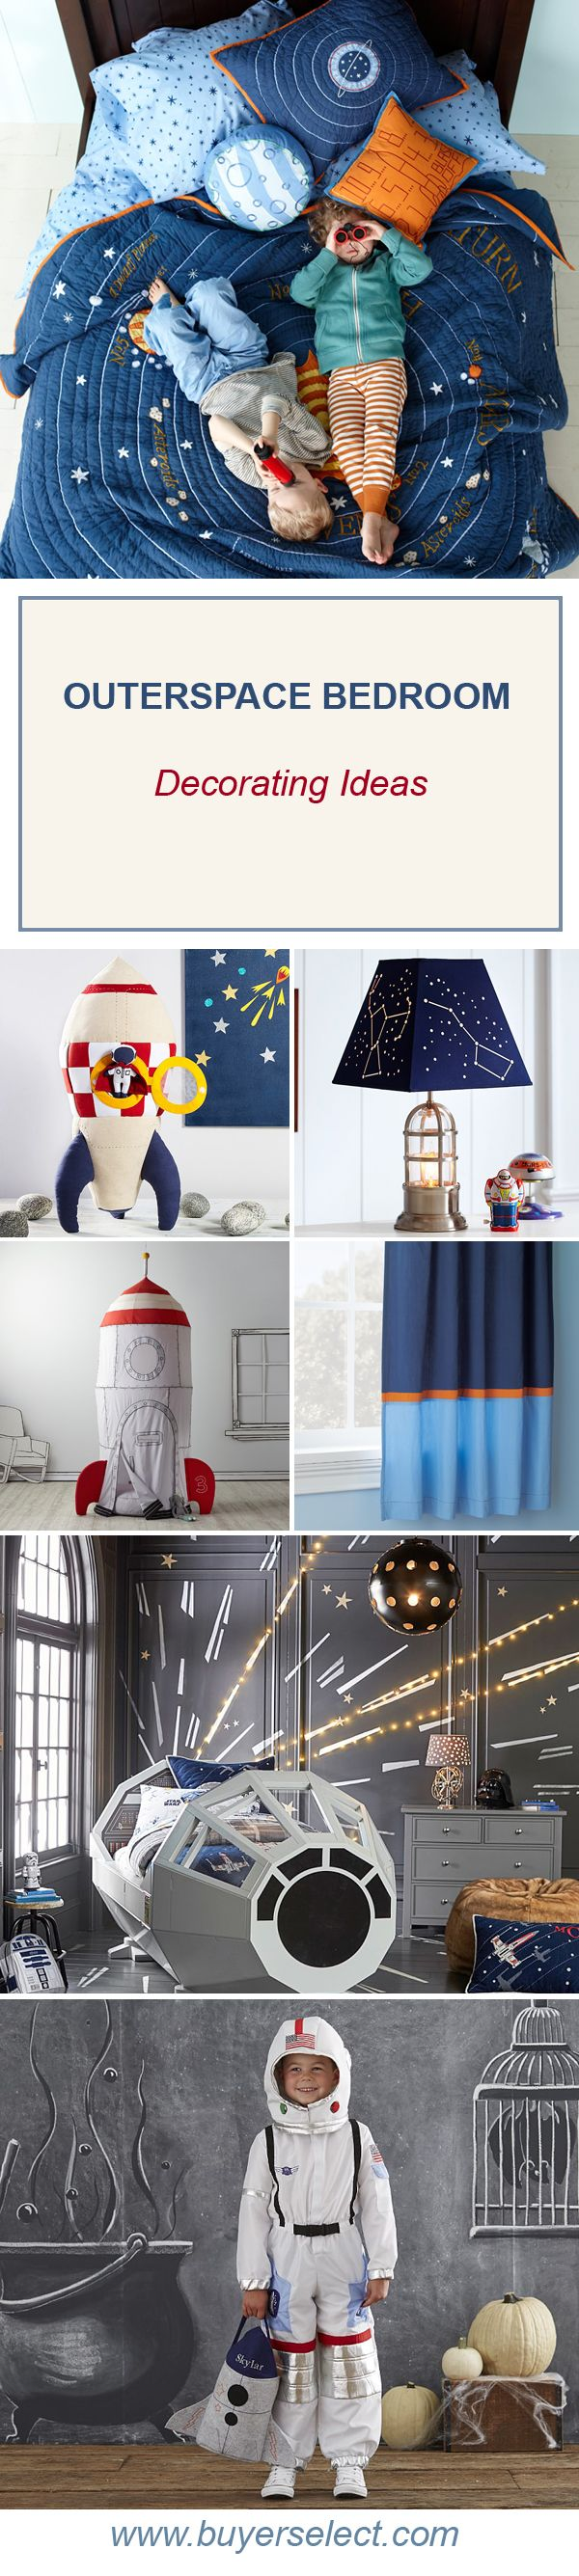 outer space bedroom boys rooms solar system planet rocket bedding